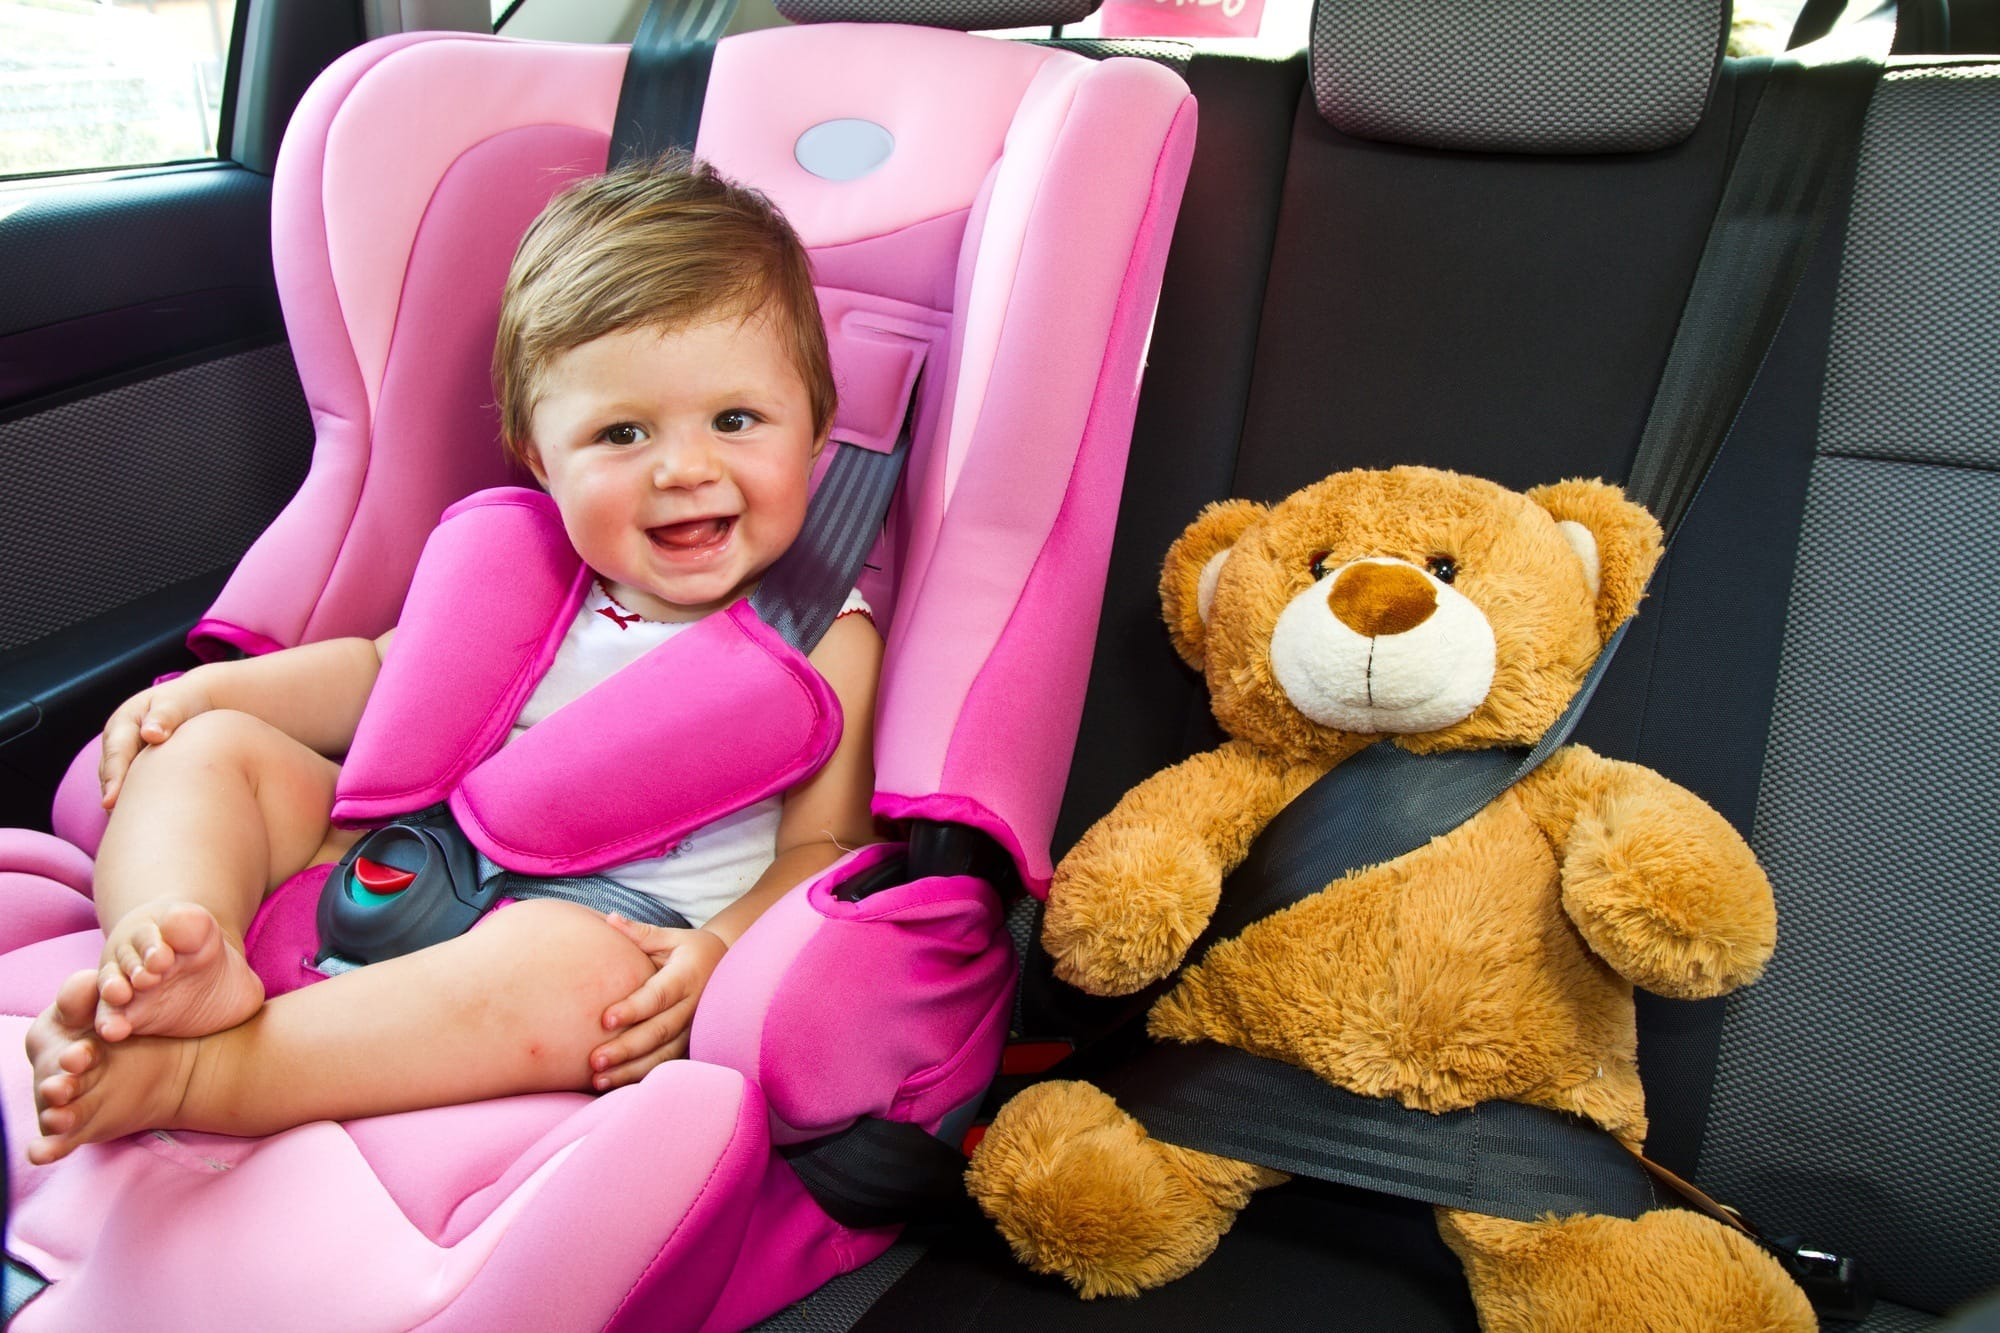 Everyone should stay buckled during your family road trip for safety's sake